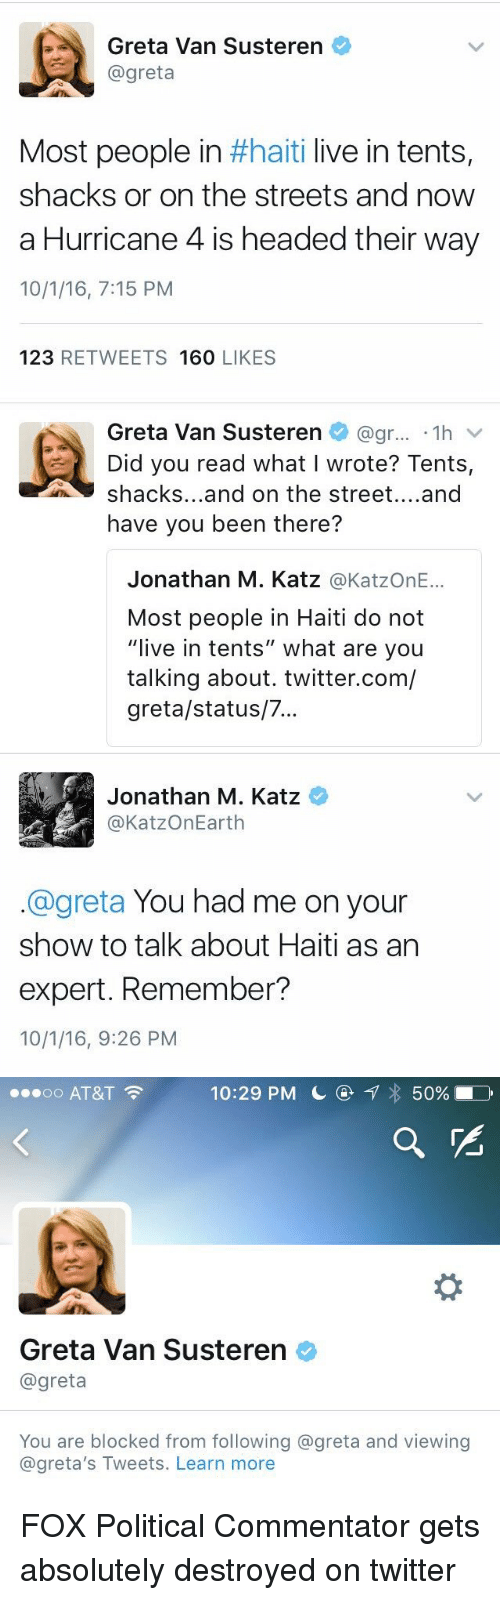 "Head, Politics, and Streets: a Greta Van Susteren  @greta  Most people in  #haiti live in tents  shacks or on the streets and now  a Hurricane 4 is headed their way  10/1/16, 7:15 PM  123  RETWEETS 160  LIKES   Greta Van Susteren @gr... 1h  v  Did you read what I wrote? Tents,  shacks... and on the street  and  have you been there?  Jonathan M. Katz  @KatzOnE...  Most people in Haiti do not  ""live in tents"" what are you  talking about. twitter.com/  greta/status/7...   Jonathan M. Katz  @KatzOnEarth  @greta You had me on your  show to talk about Haiti as an  expert. Remember?  10/1/16, 9:26 PM   ...oo AT&T  F 10:29 PM L  7 50%  Greta Van Susteren  @greta  You are blocked from following @greta and viewing  @greta's Tweets. Learn more FOX Political Commentator gets absolutely destroyed on twitter"